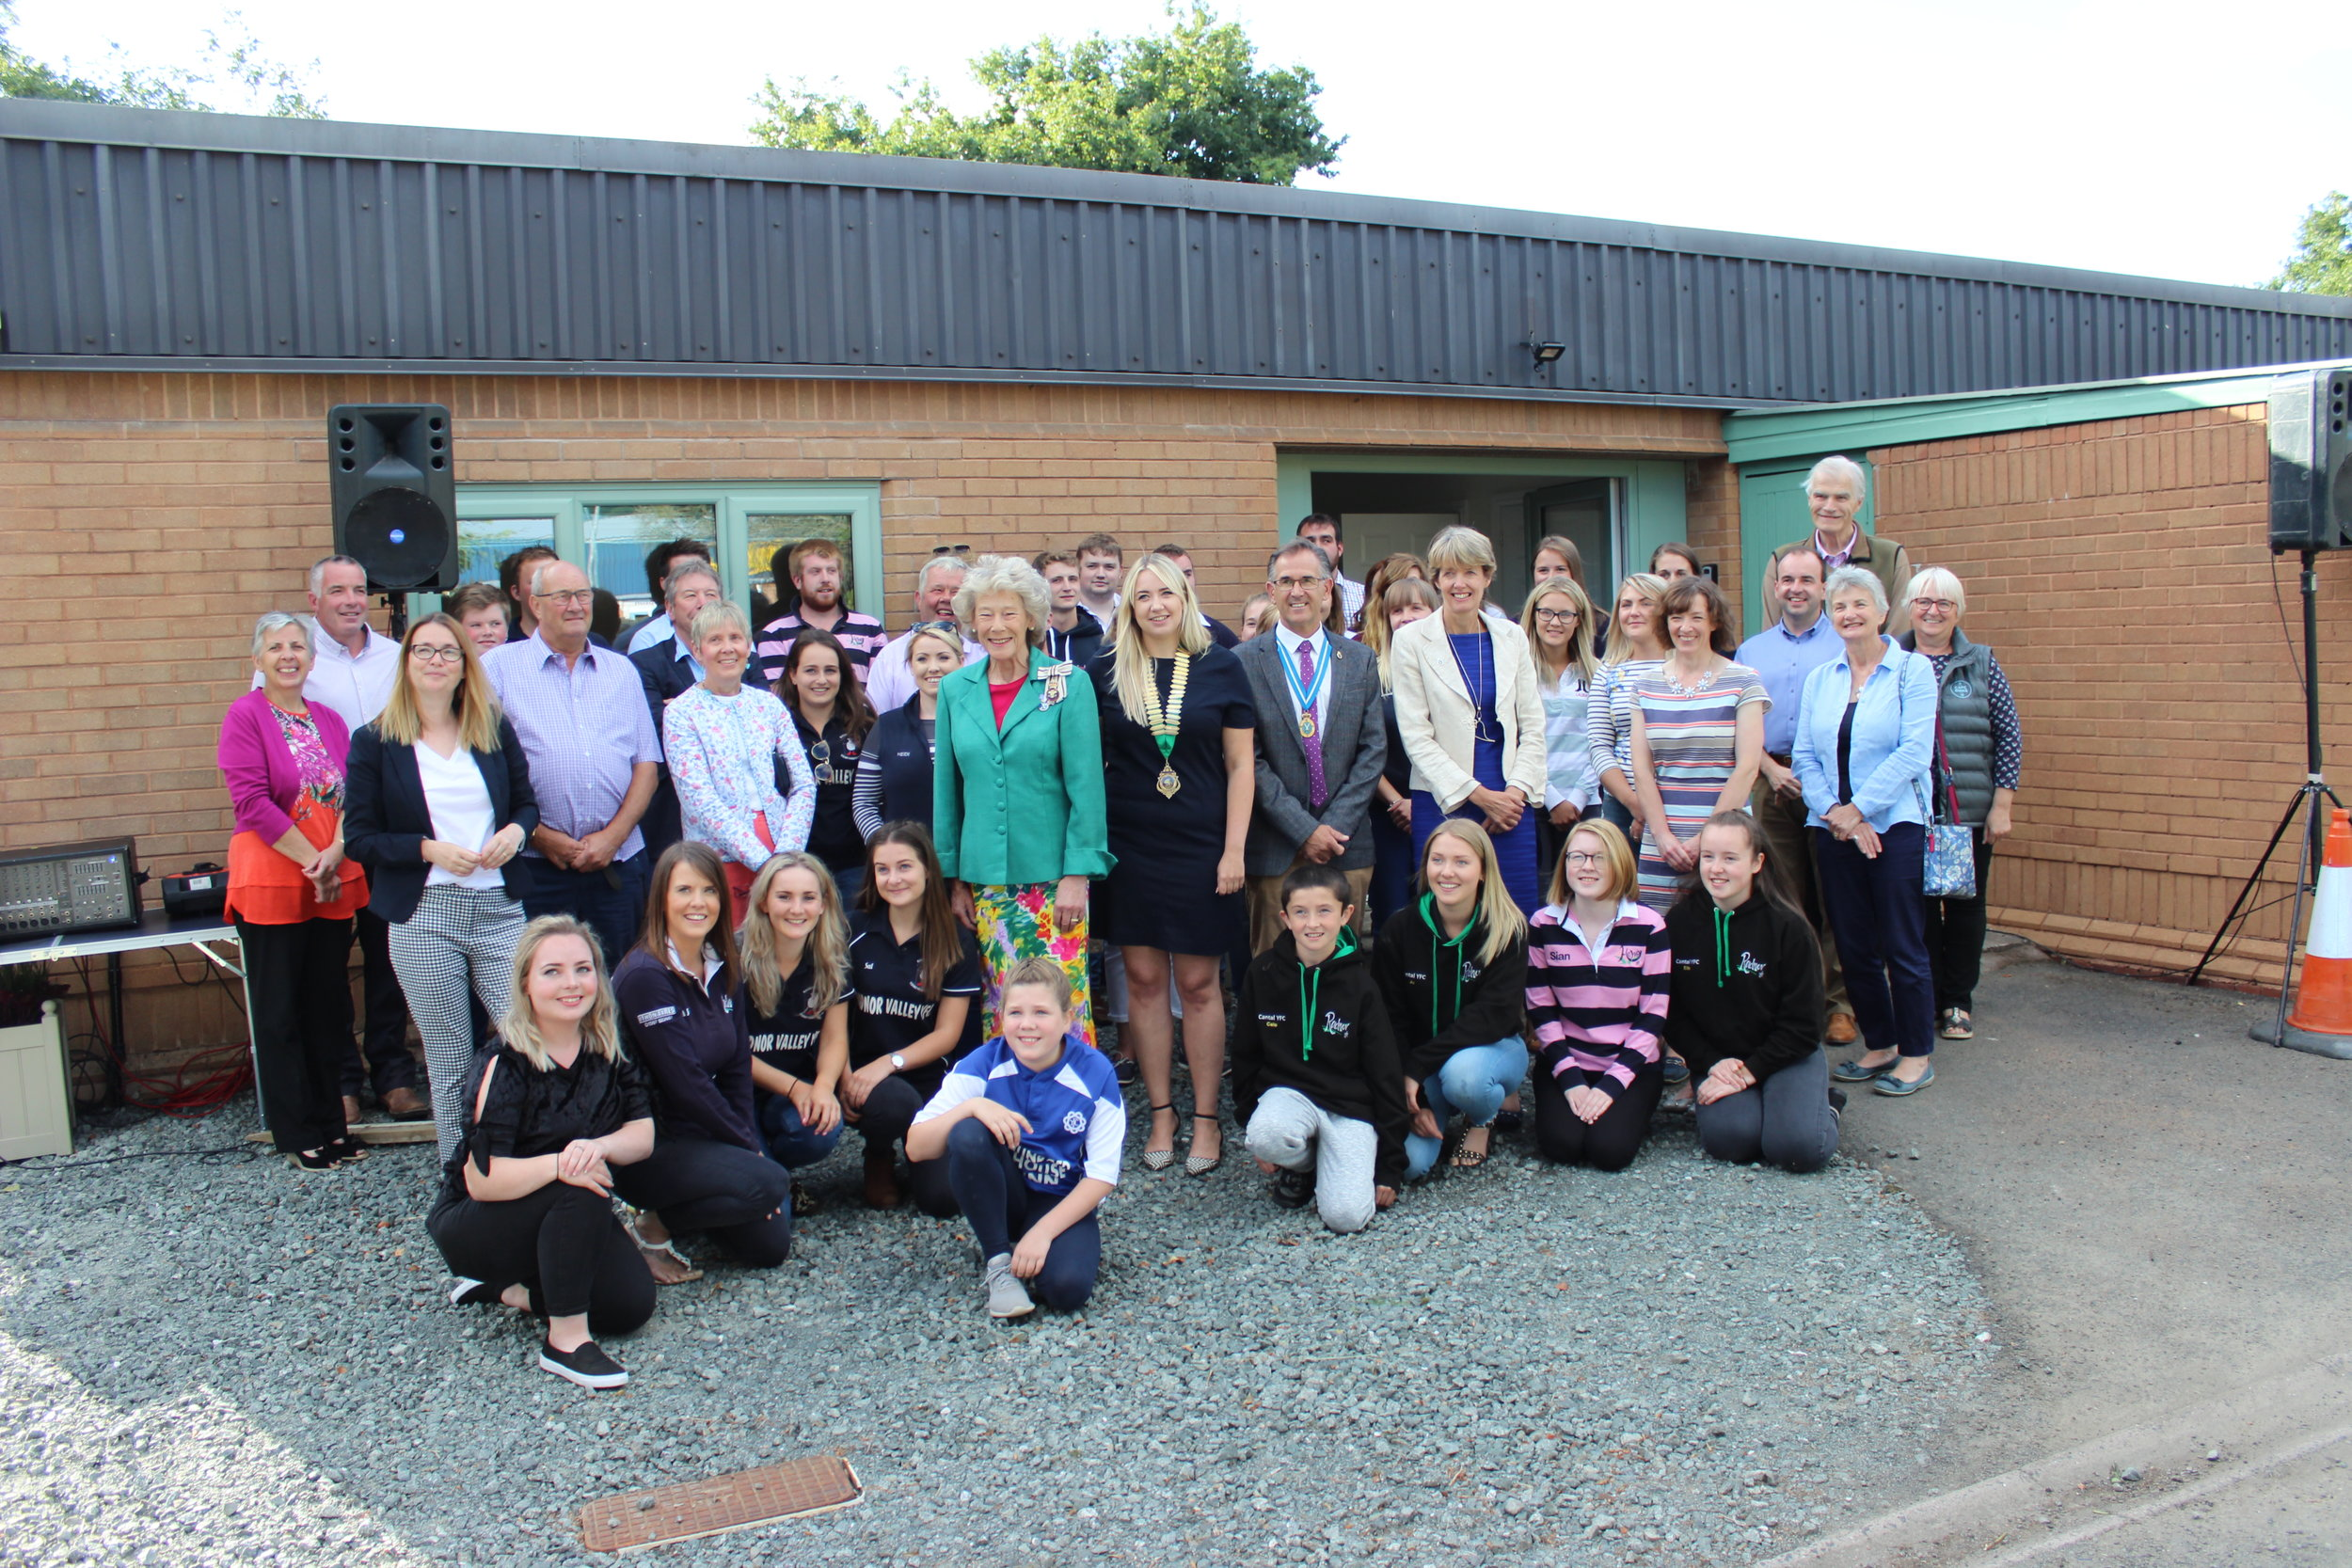 Past and present members, Vice Presidents and President for the Federation as well as supports gathered at the new Radnor YFC Centre for the Official Opening.